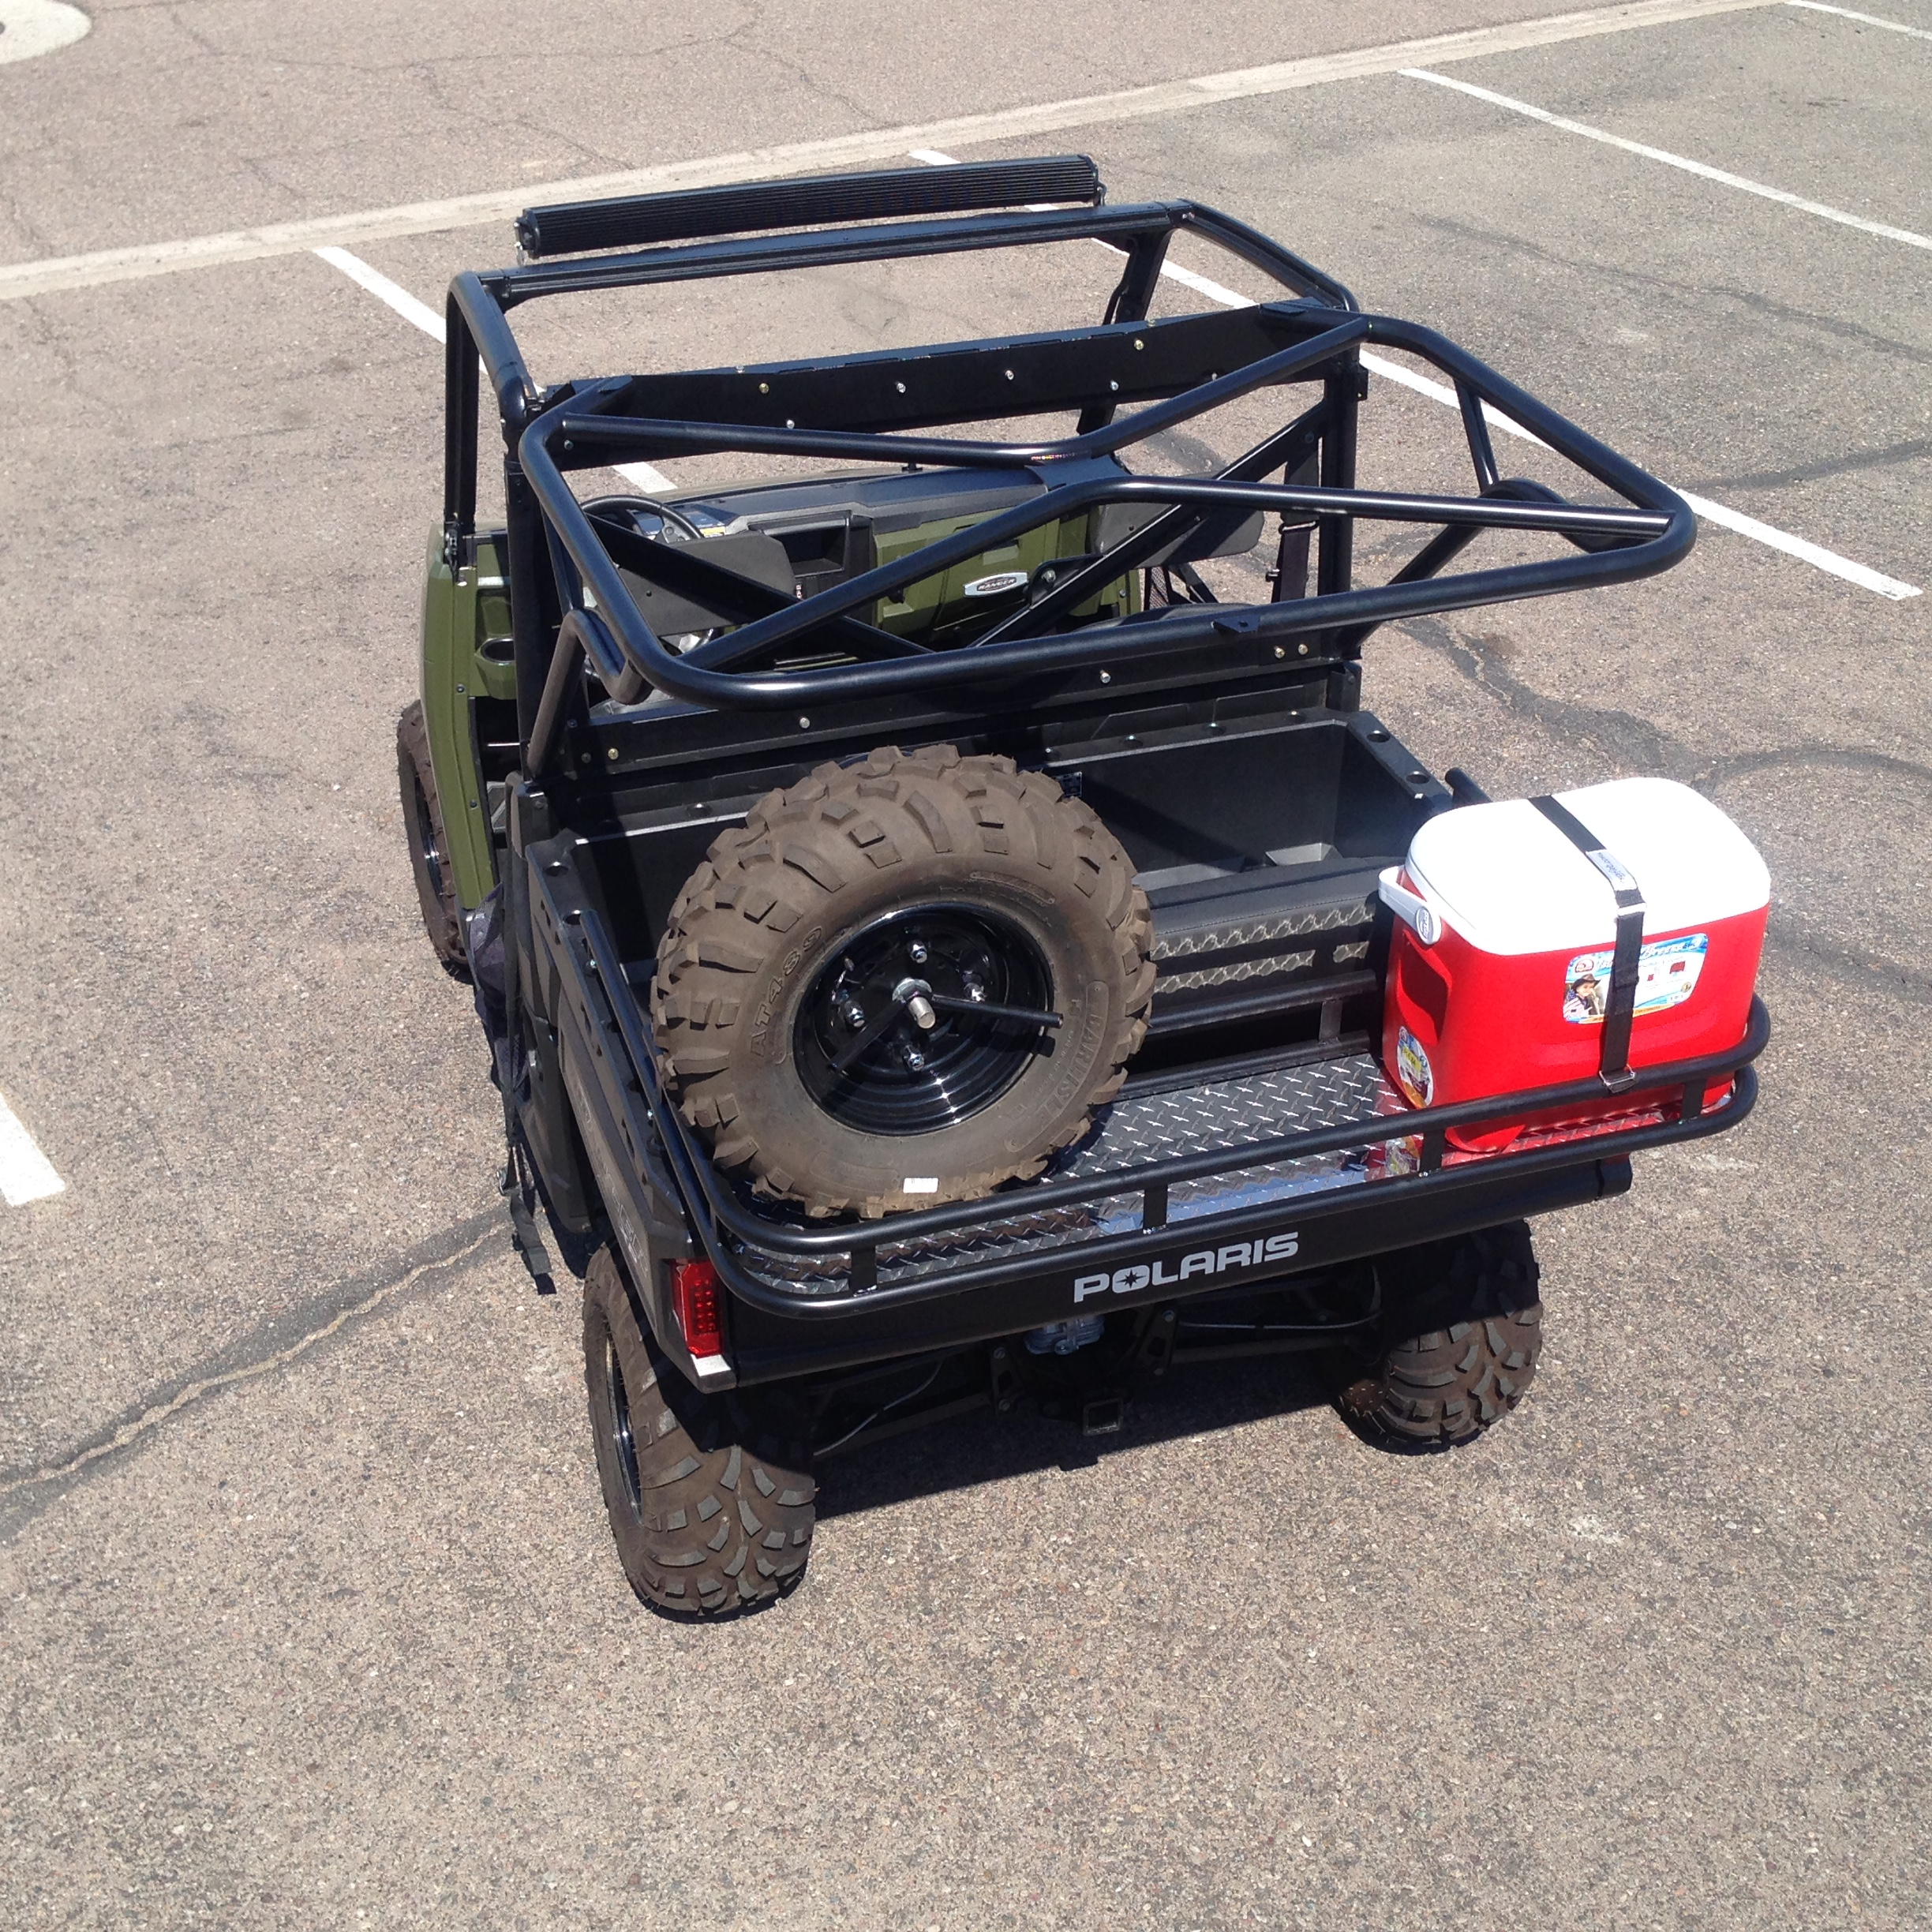 Ranger 900 XP rear cage kit and cooler rack